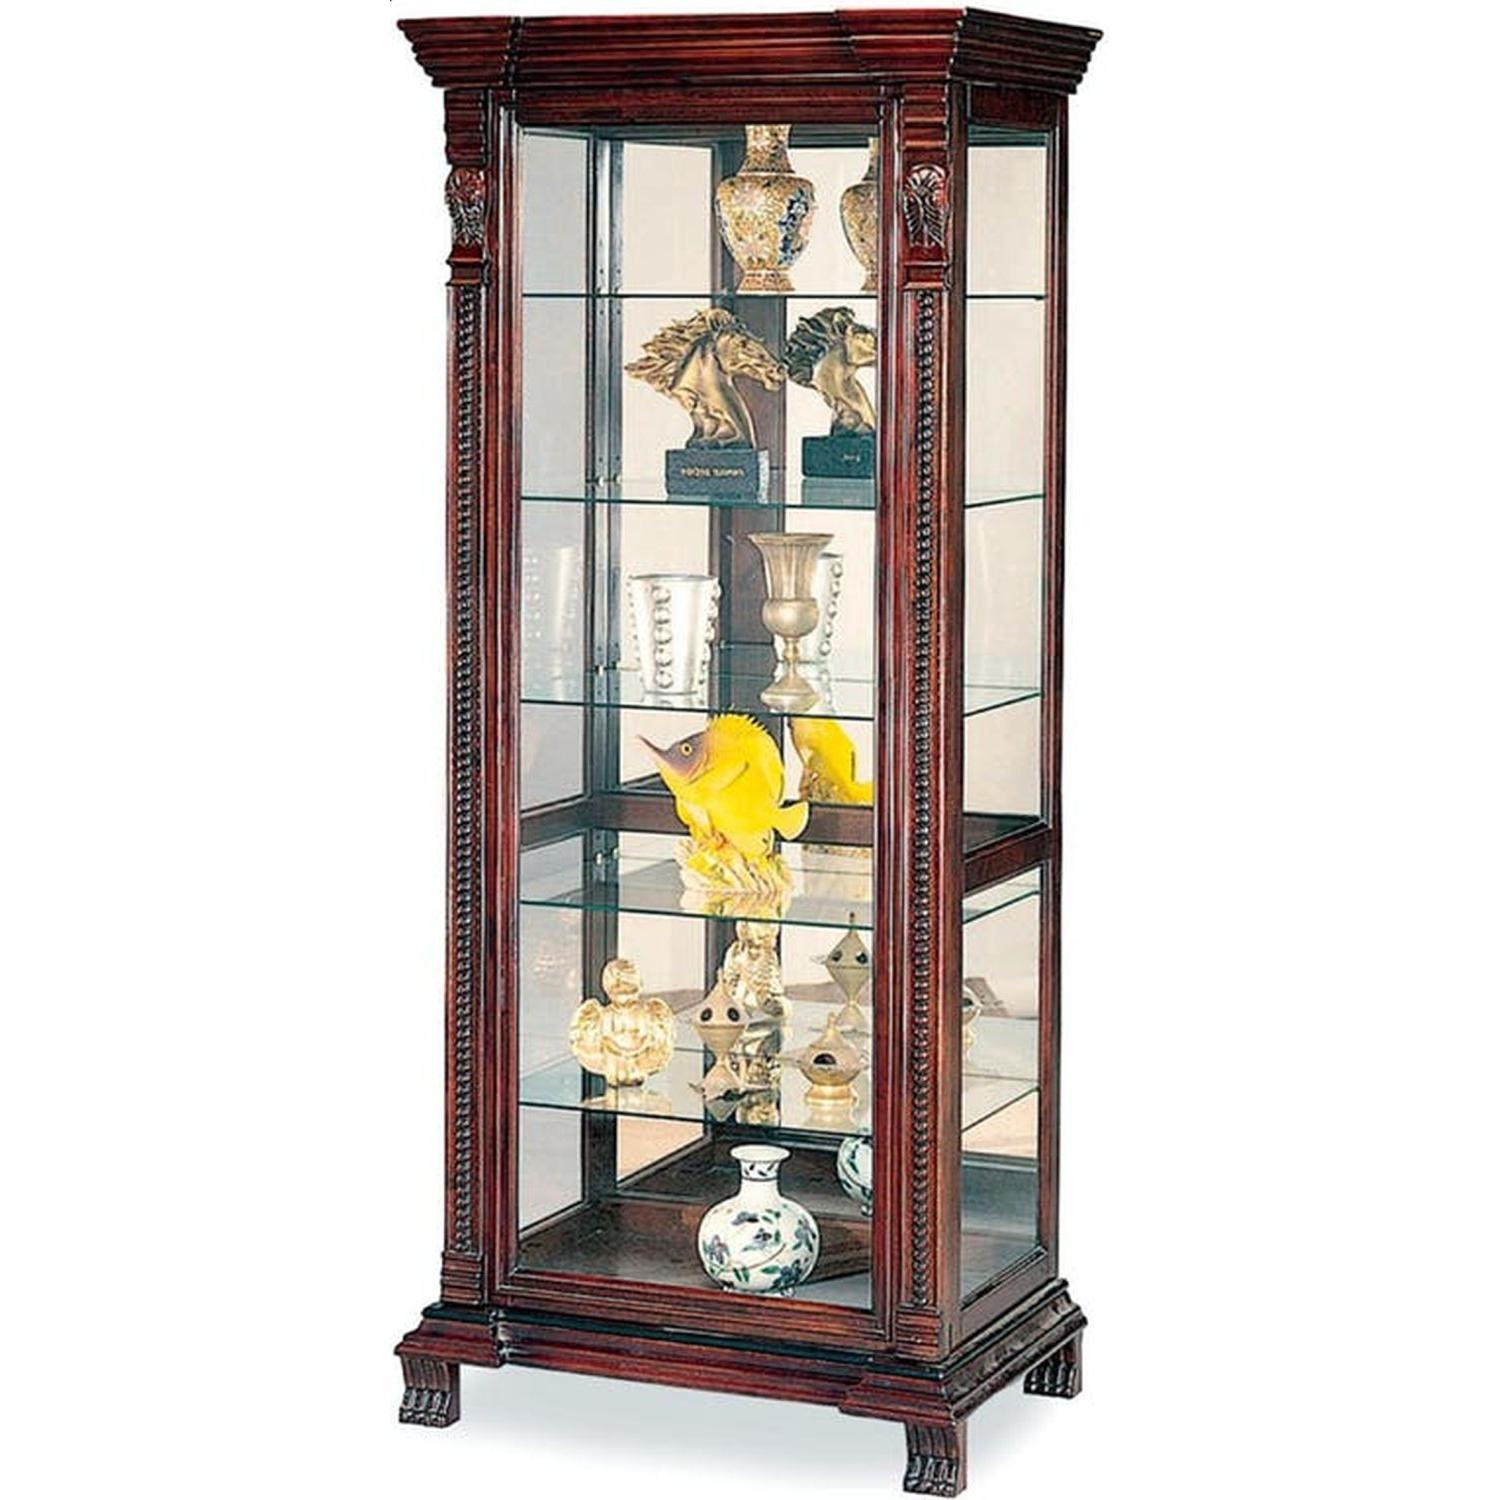 Curio Cabinet With Intricate Woodwork Carvings - image-2